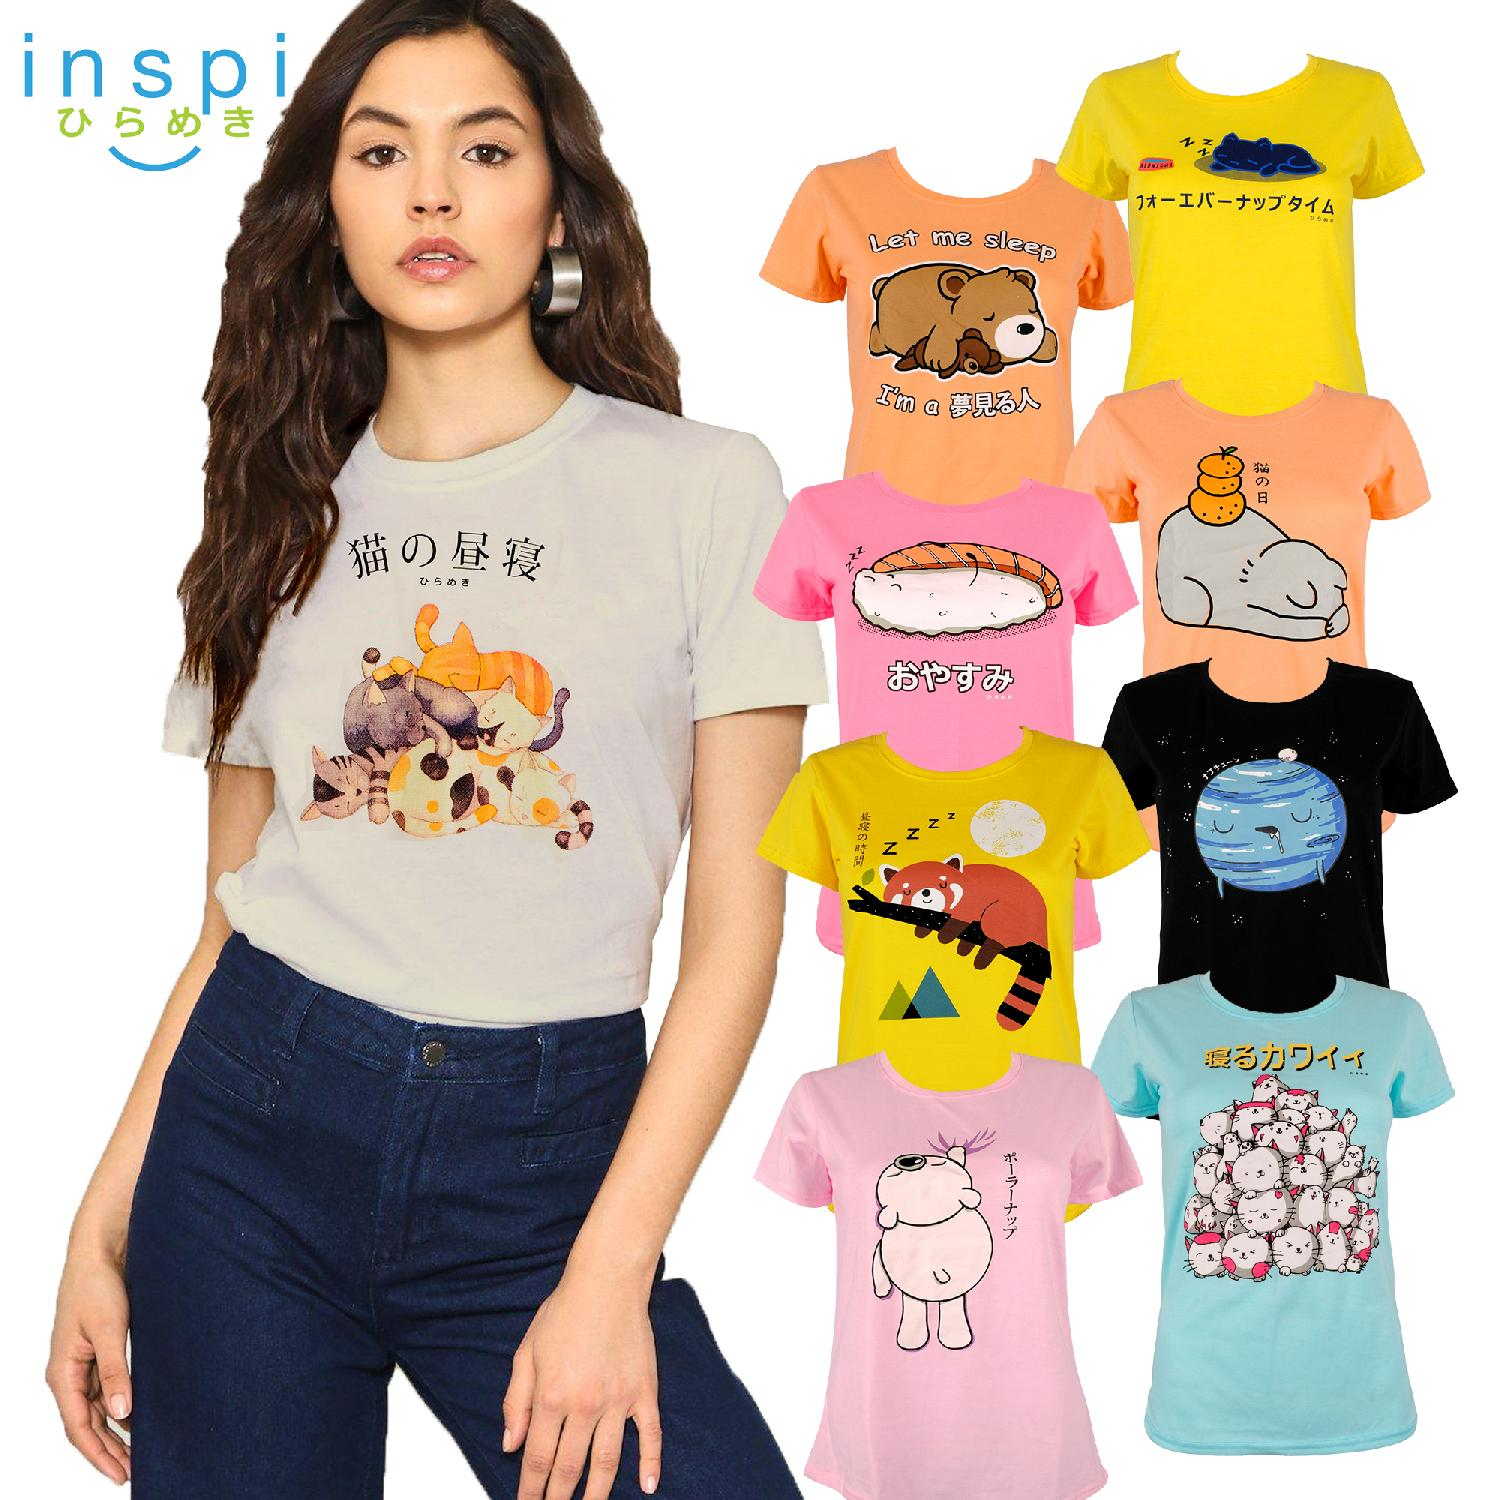 b75e816ef INSPI Tees Ladies Nap Collection tshirt printed graphic tee Ladies t shirt  shirts women tshirts for